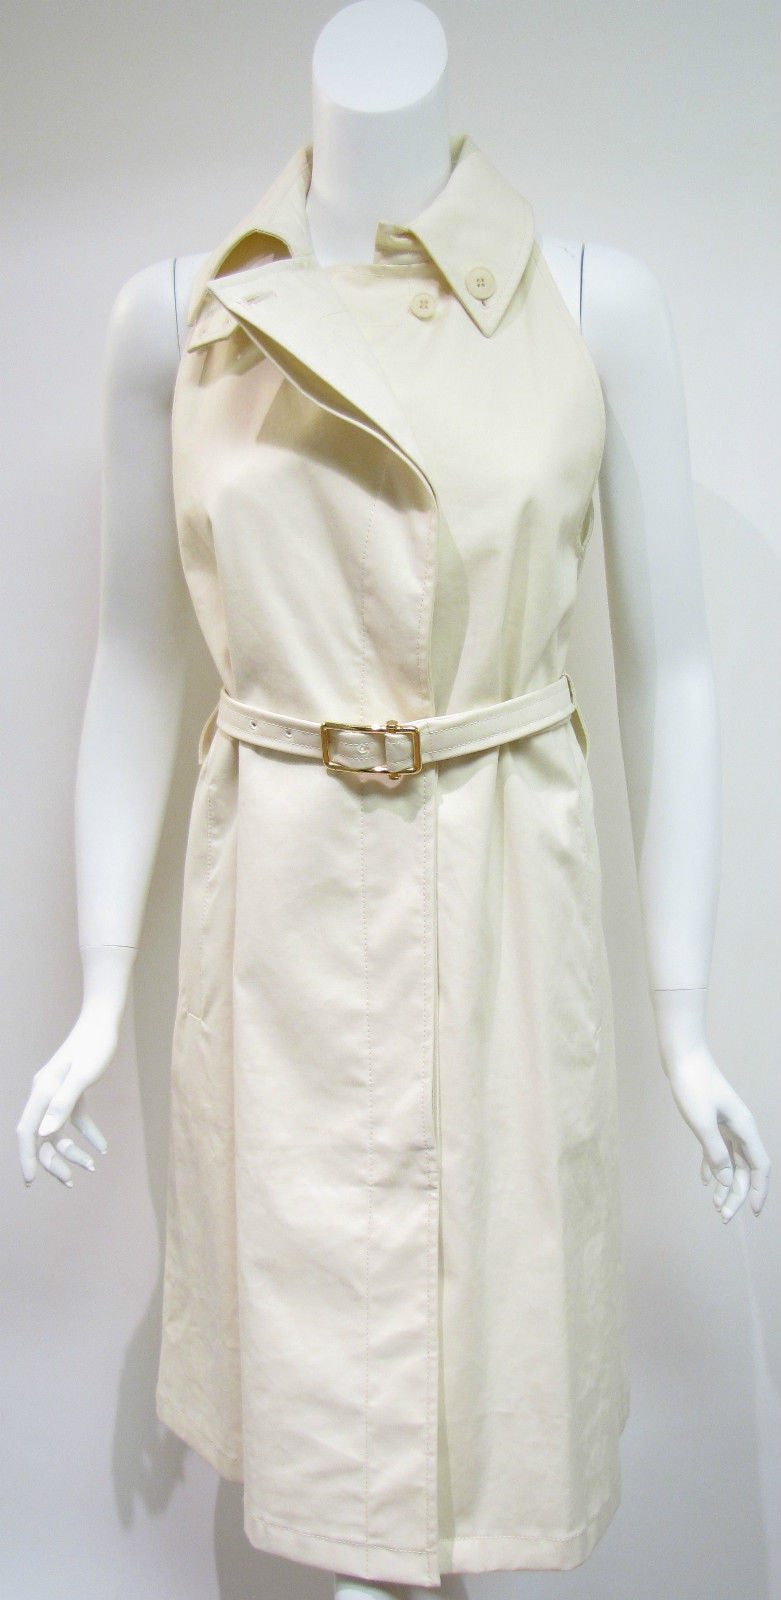 bisbiz.com STELLA McCARTNEY  Fabulous Cream Cotton Sleeveless Belted Trench Coat  Size EU40 /US 6 - Bis Luxury Resale